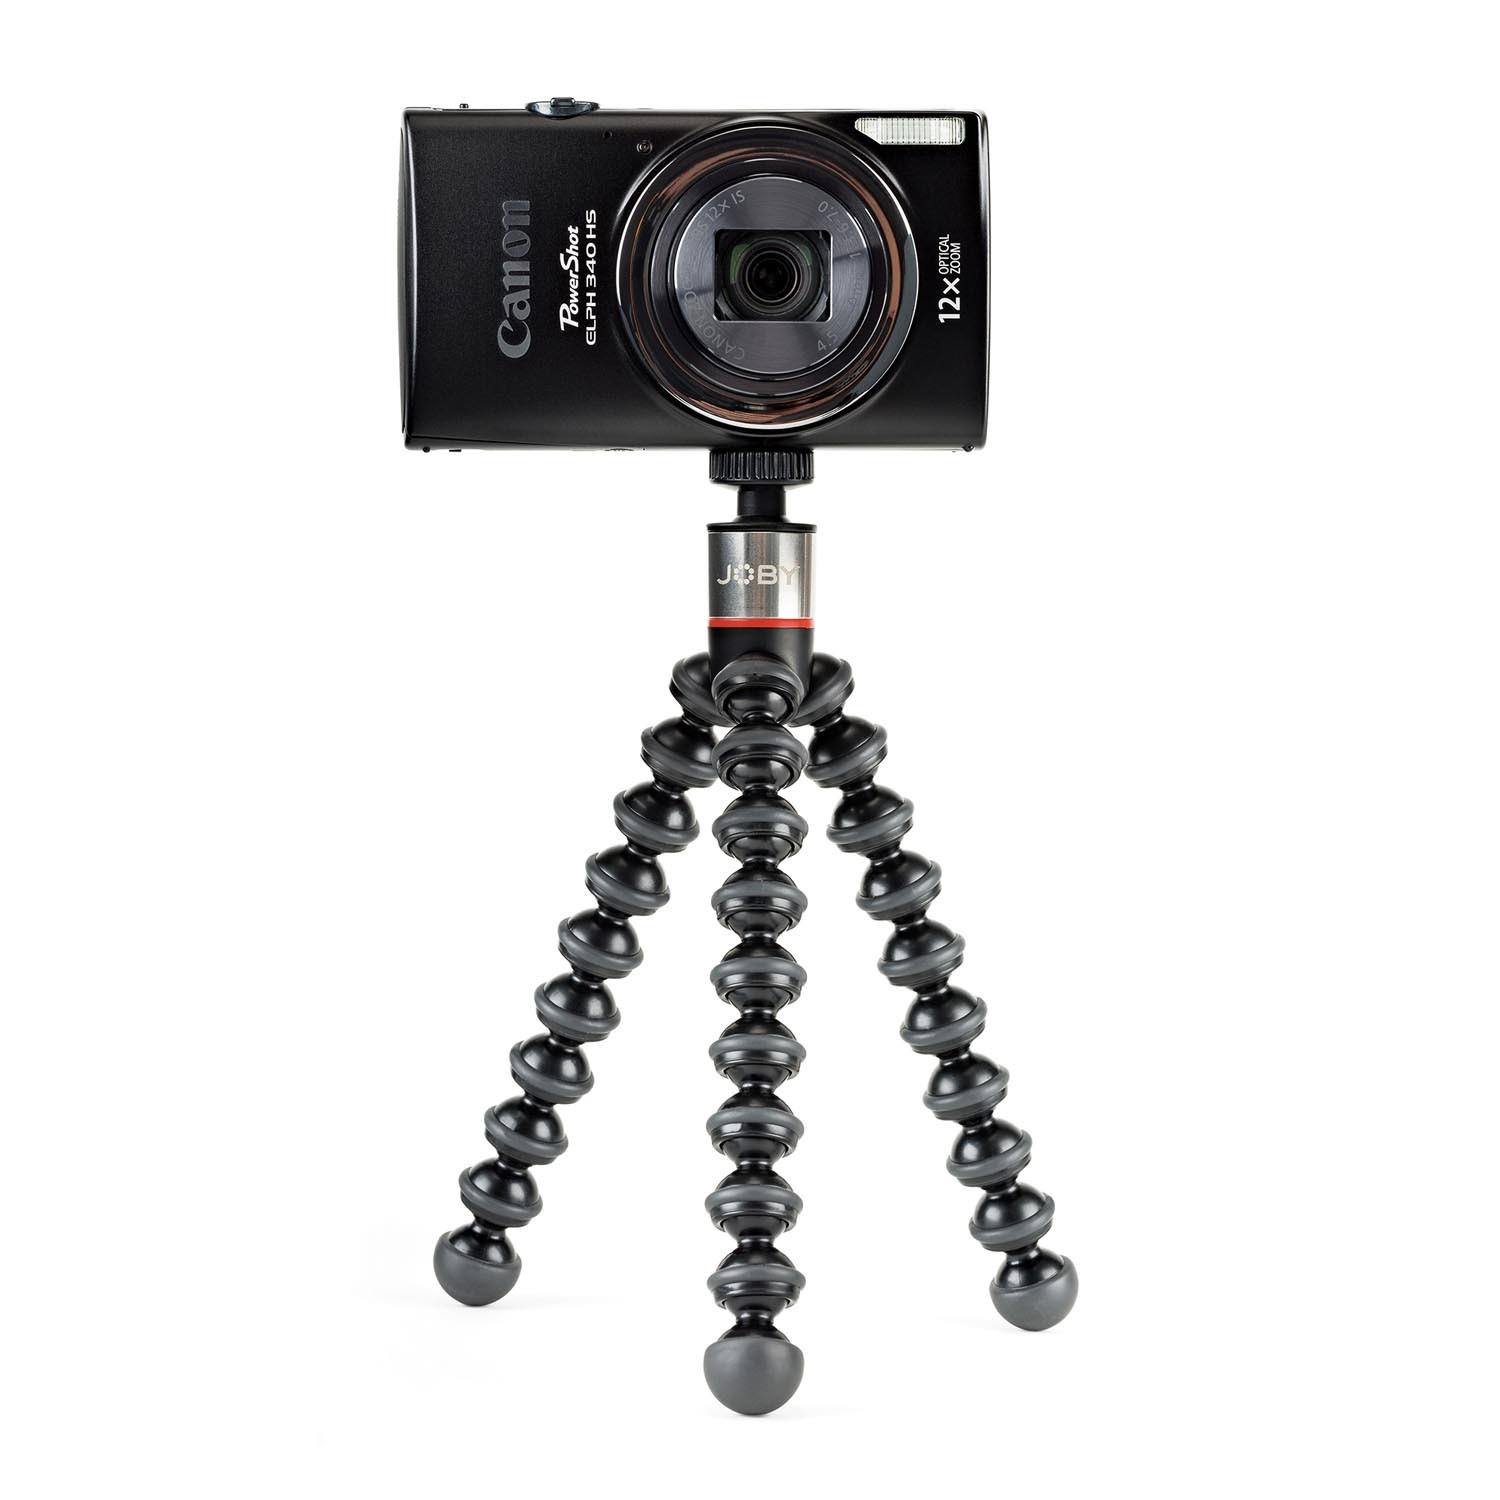 GorillaPod 325 Compact Flexible Tripod for Point & Shoot and Small Cameras